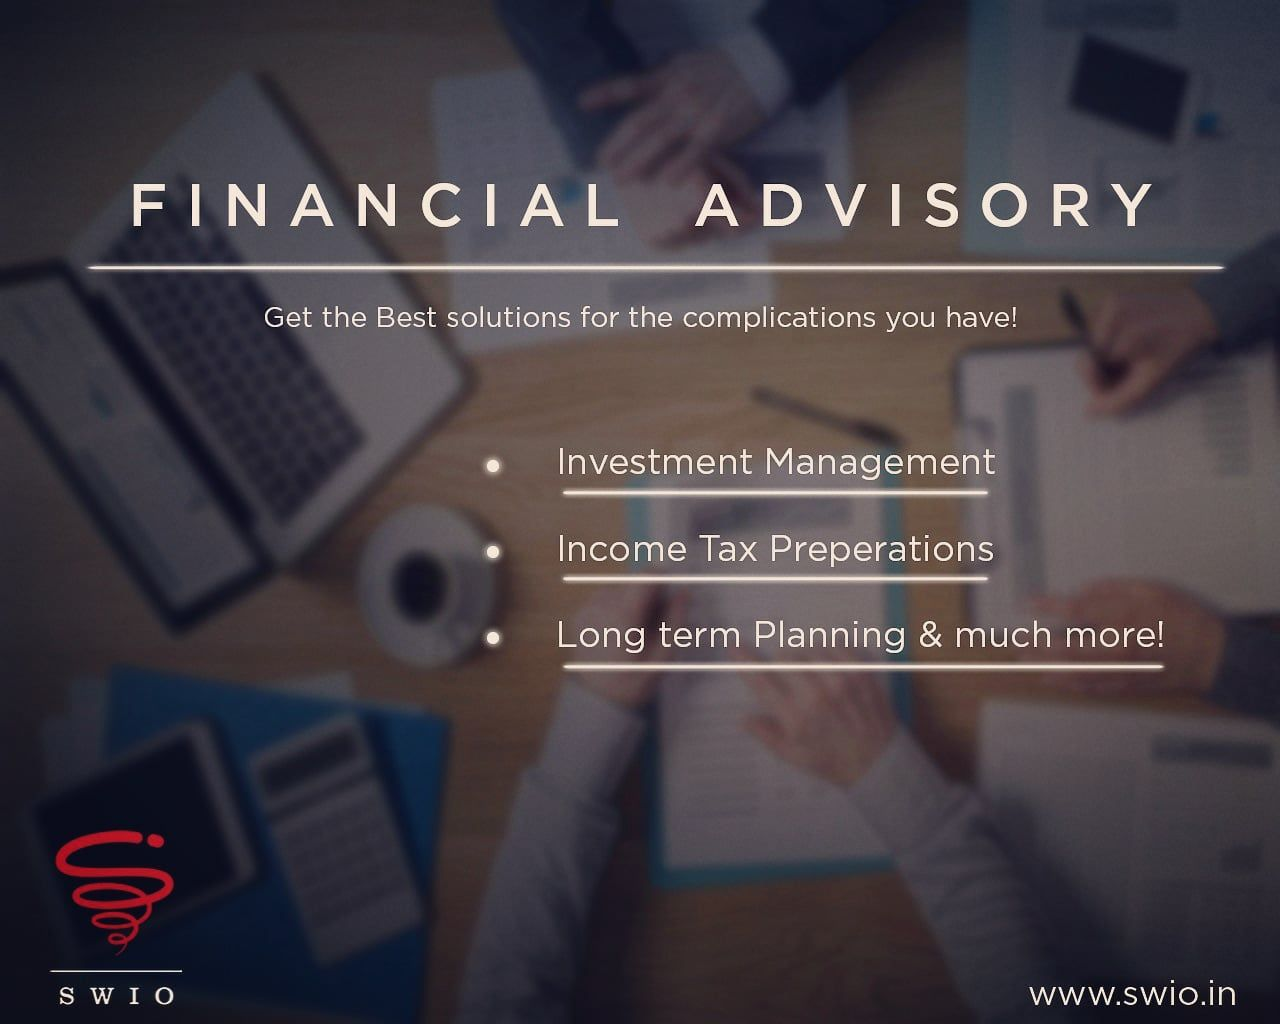 Accounting Services In Hyderabad Financial Advisory Income Tax Accounting Services